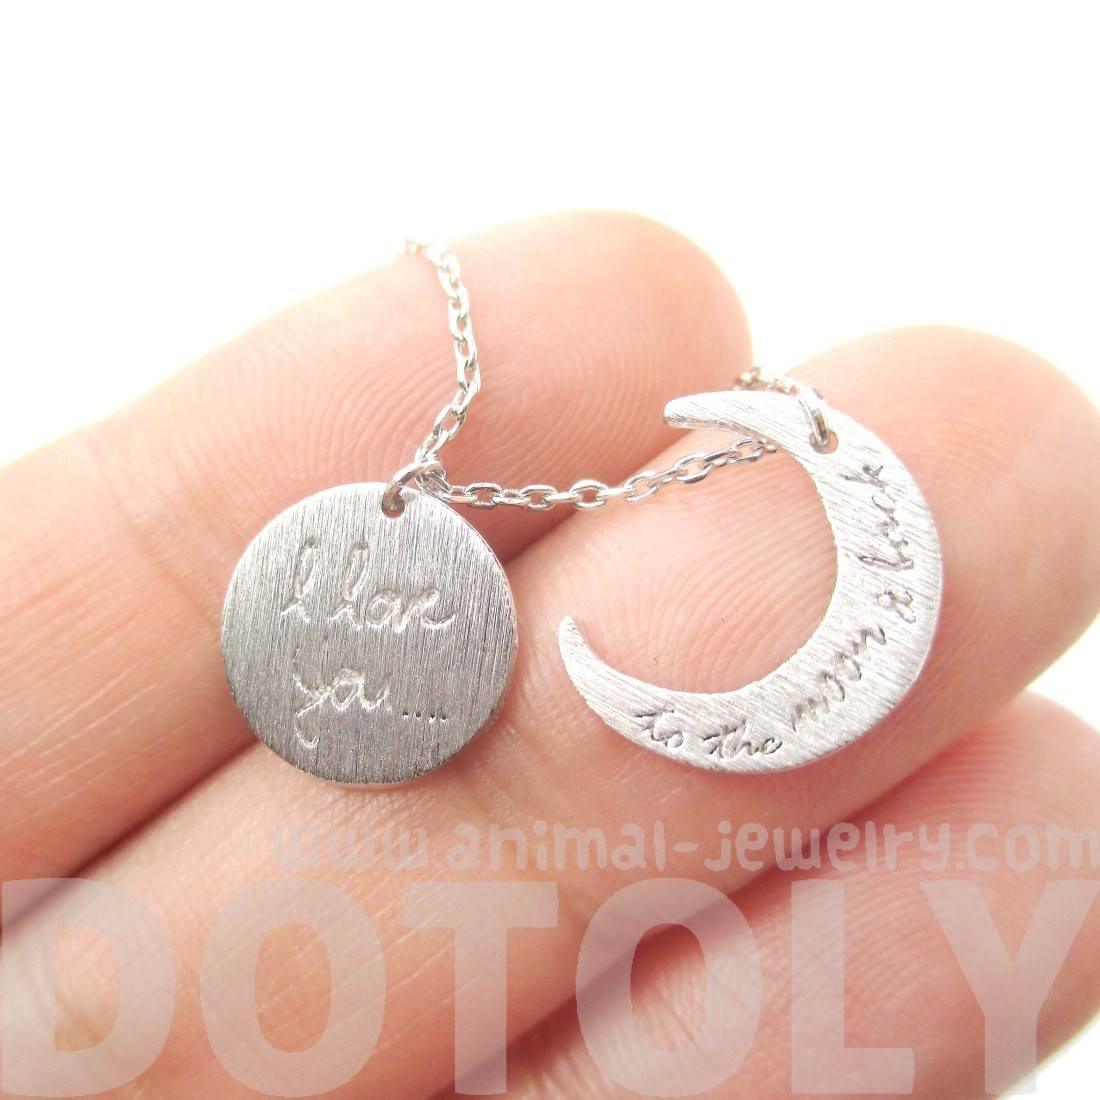 I Love You To the Moon and Back Moon Shaped Charm Necklace in Silver